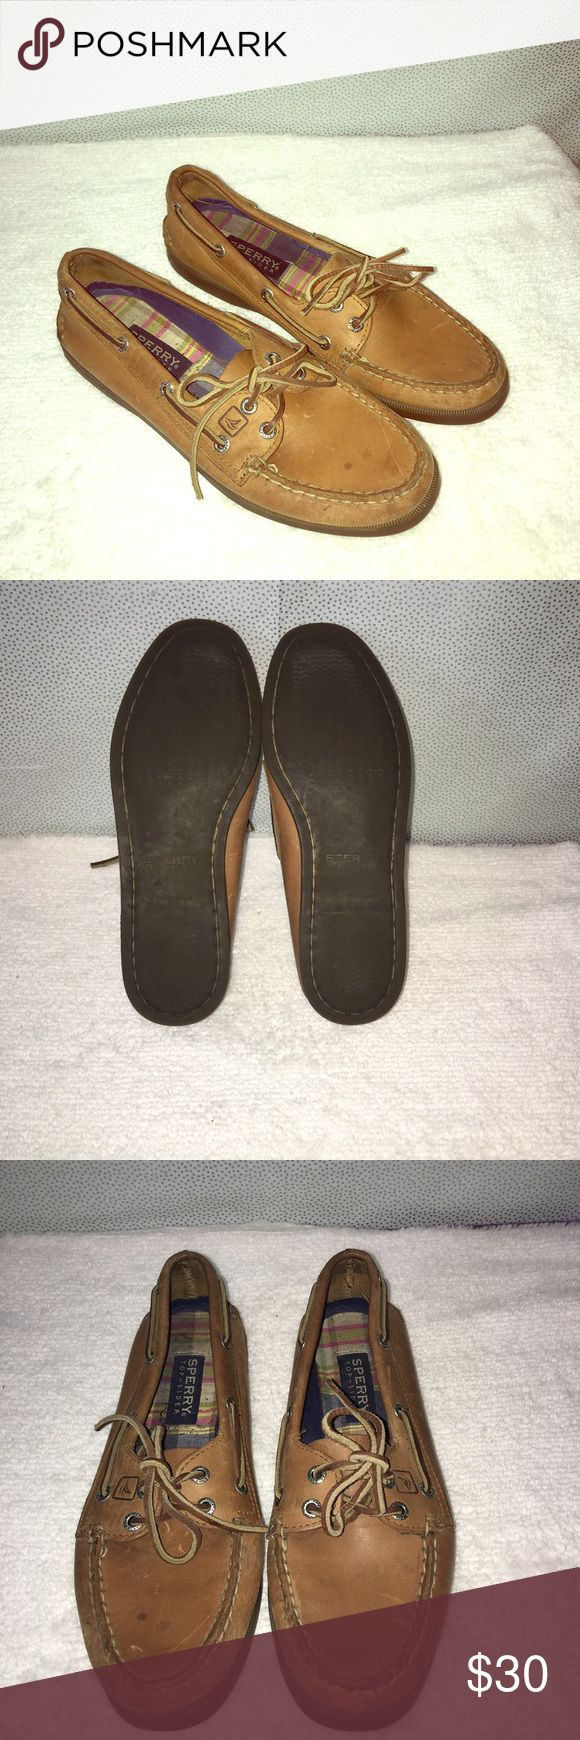 Sperry shoes Good condition. Has a few marks in front can be cleaned with cleaner. Sperry Shoes Flats & Loafers